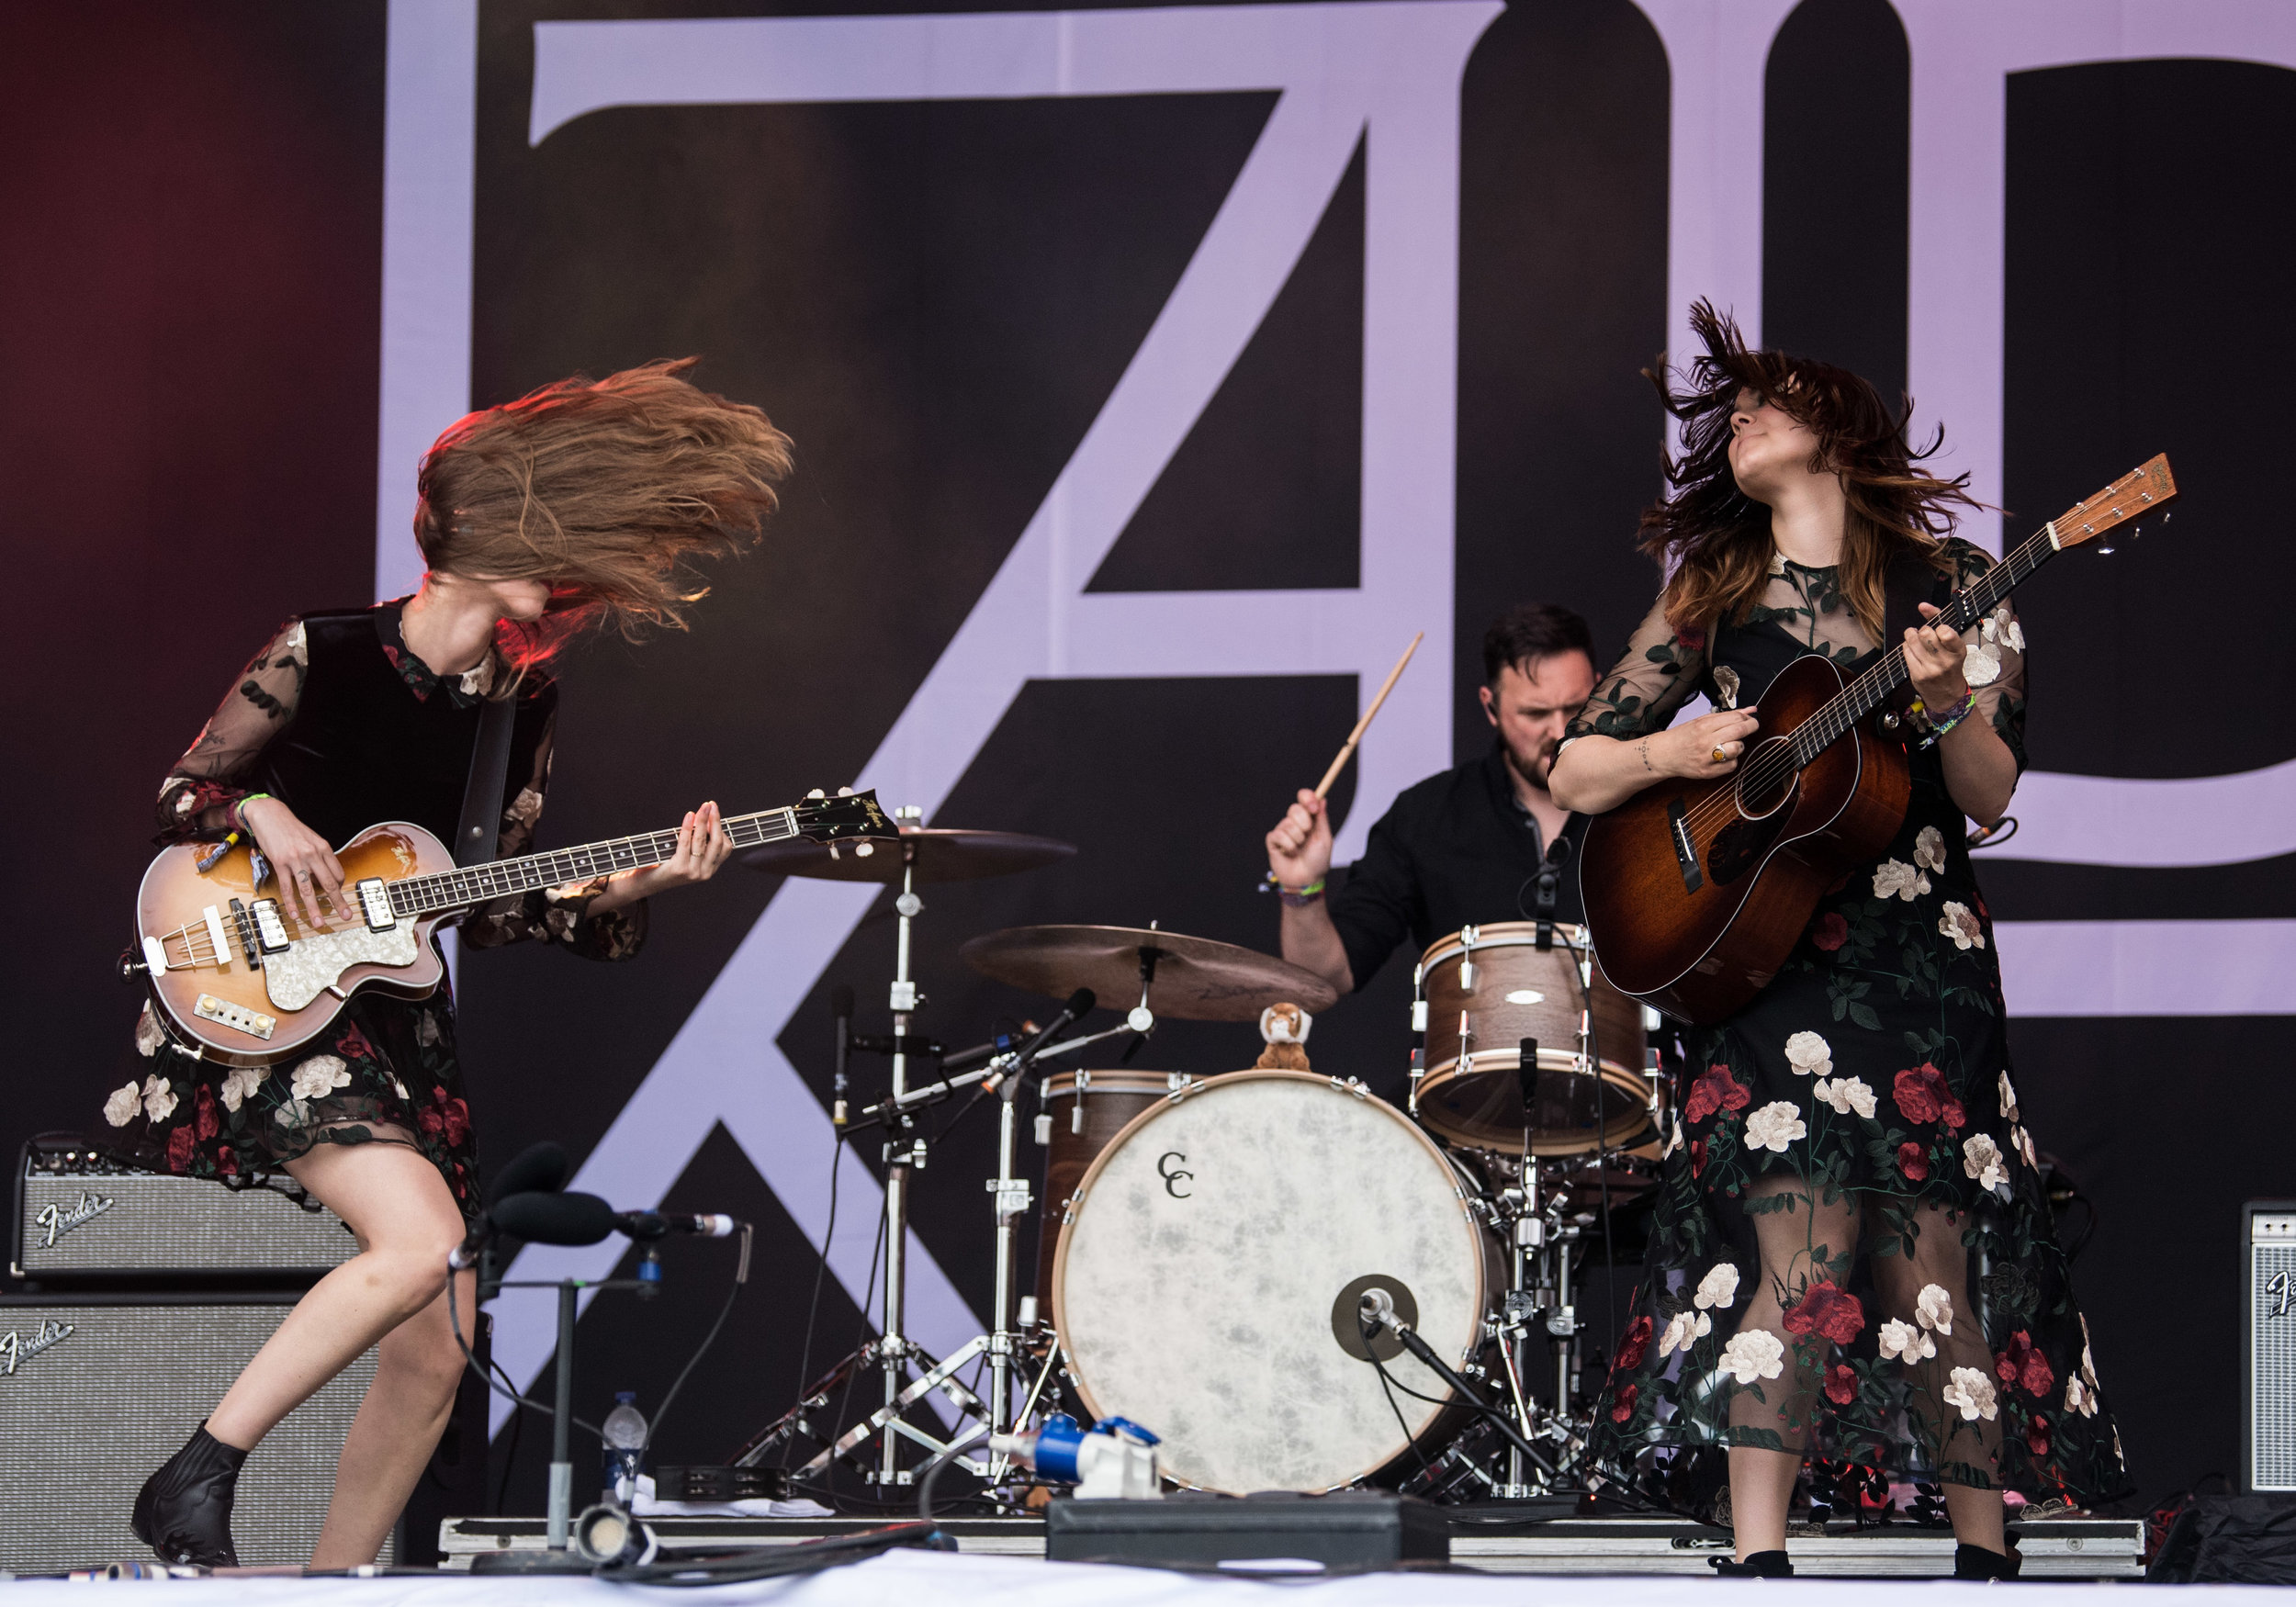 Klara S�derberg and Johanna S�derberg of First Aid Kit performing on the Pyramid Stage